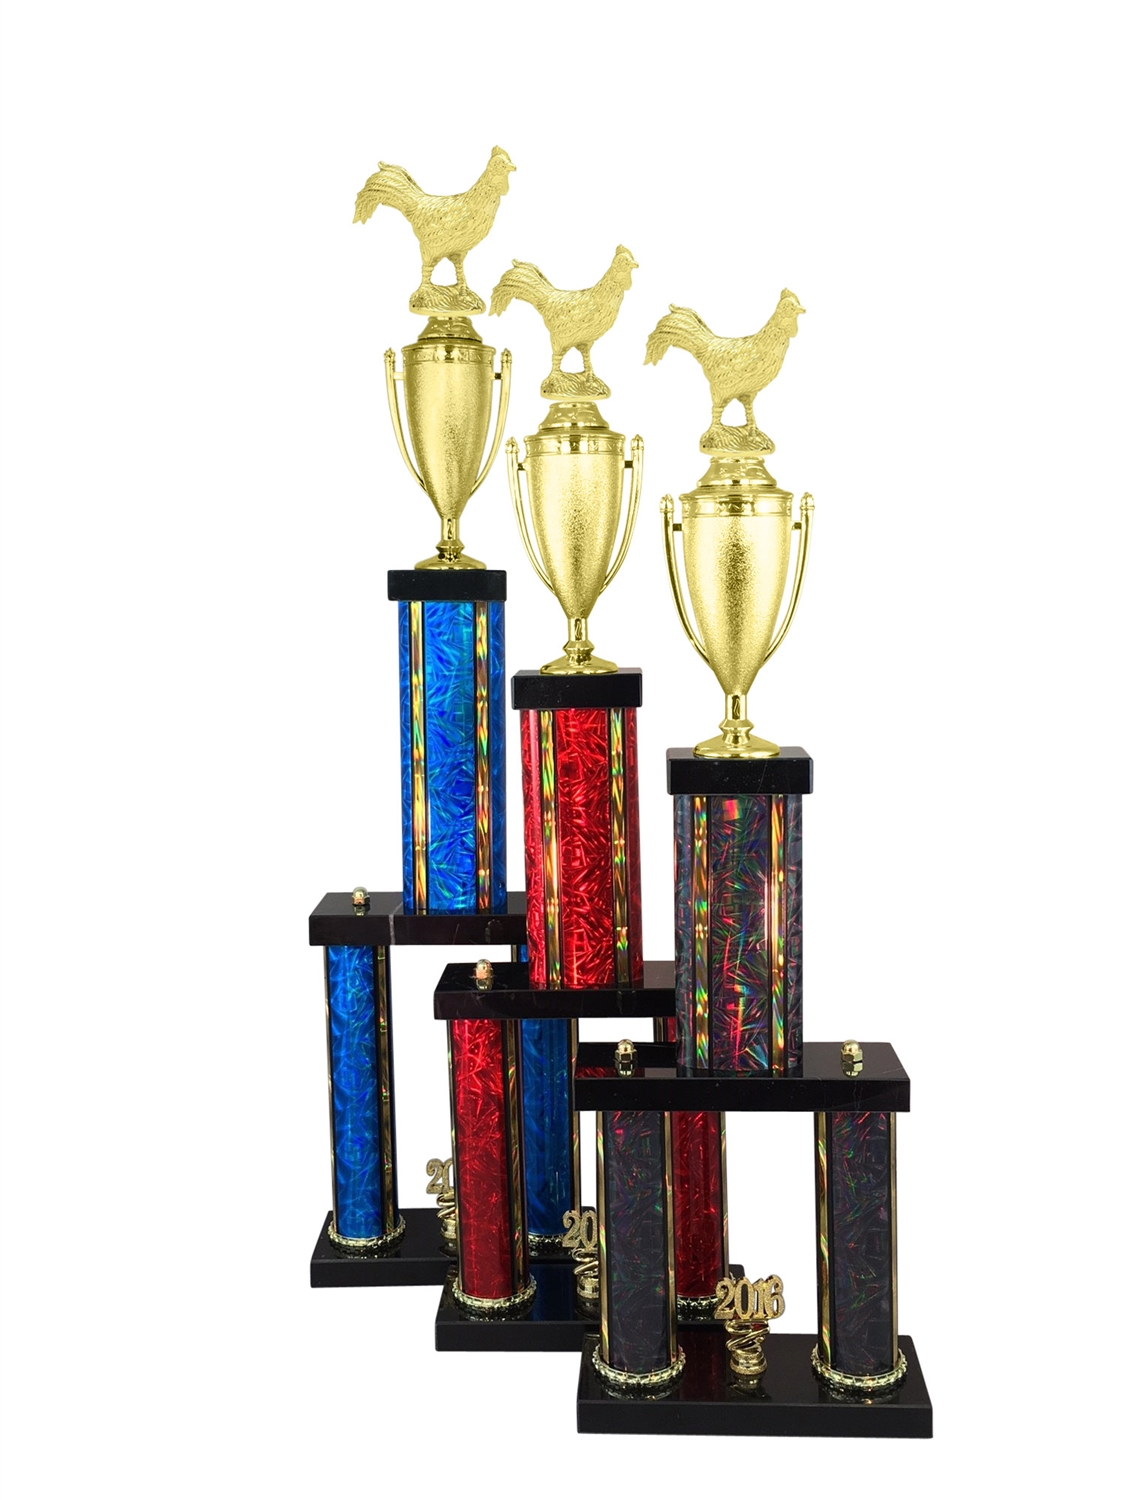 Rooster Trophy Available in 11 Color & 6 Size Options